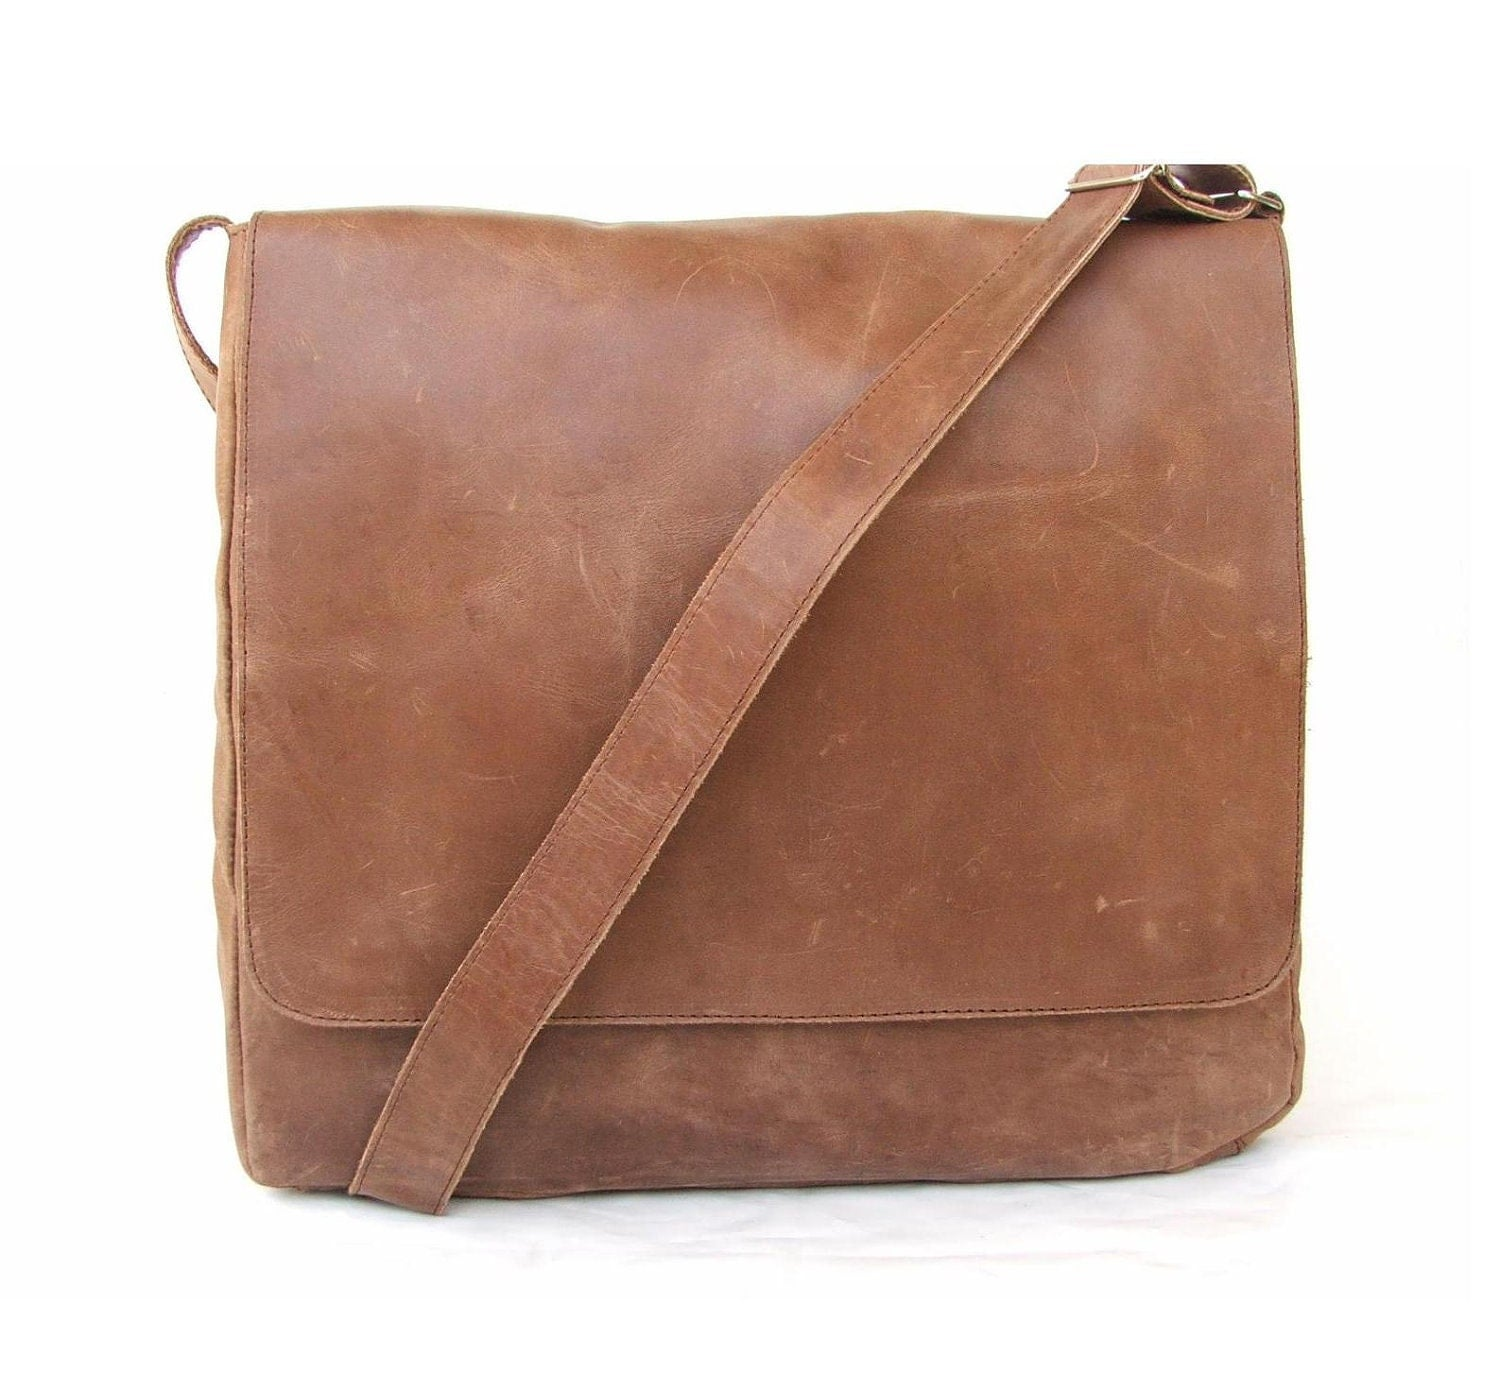 leather laptop bag Messenger bag Men Brown Leather handbag